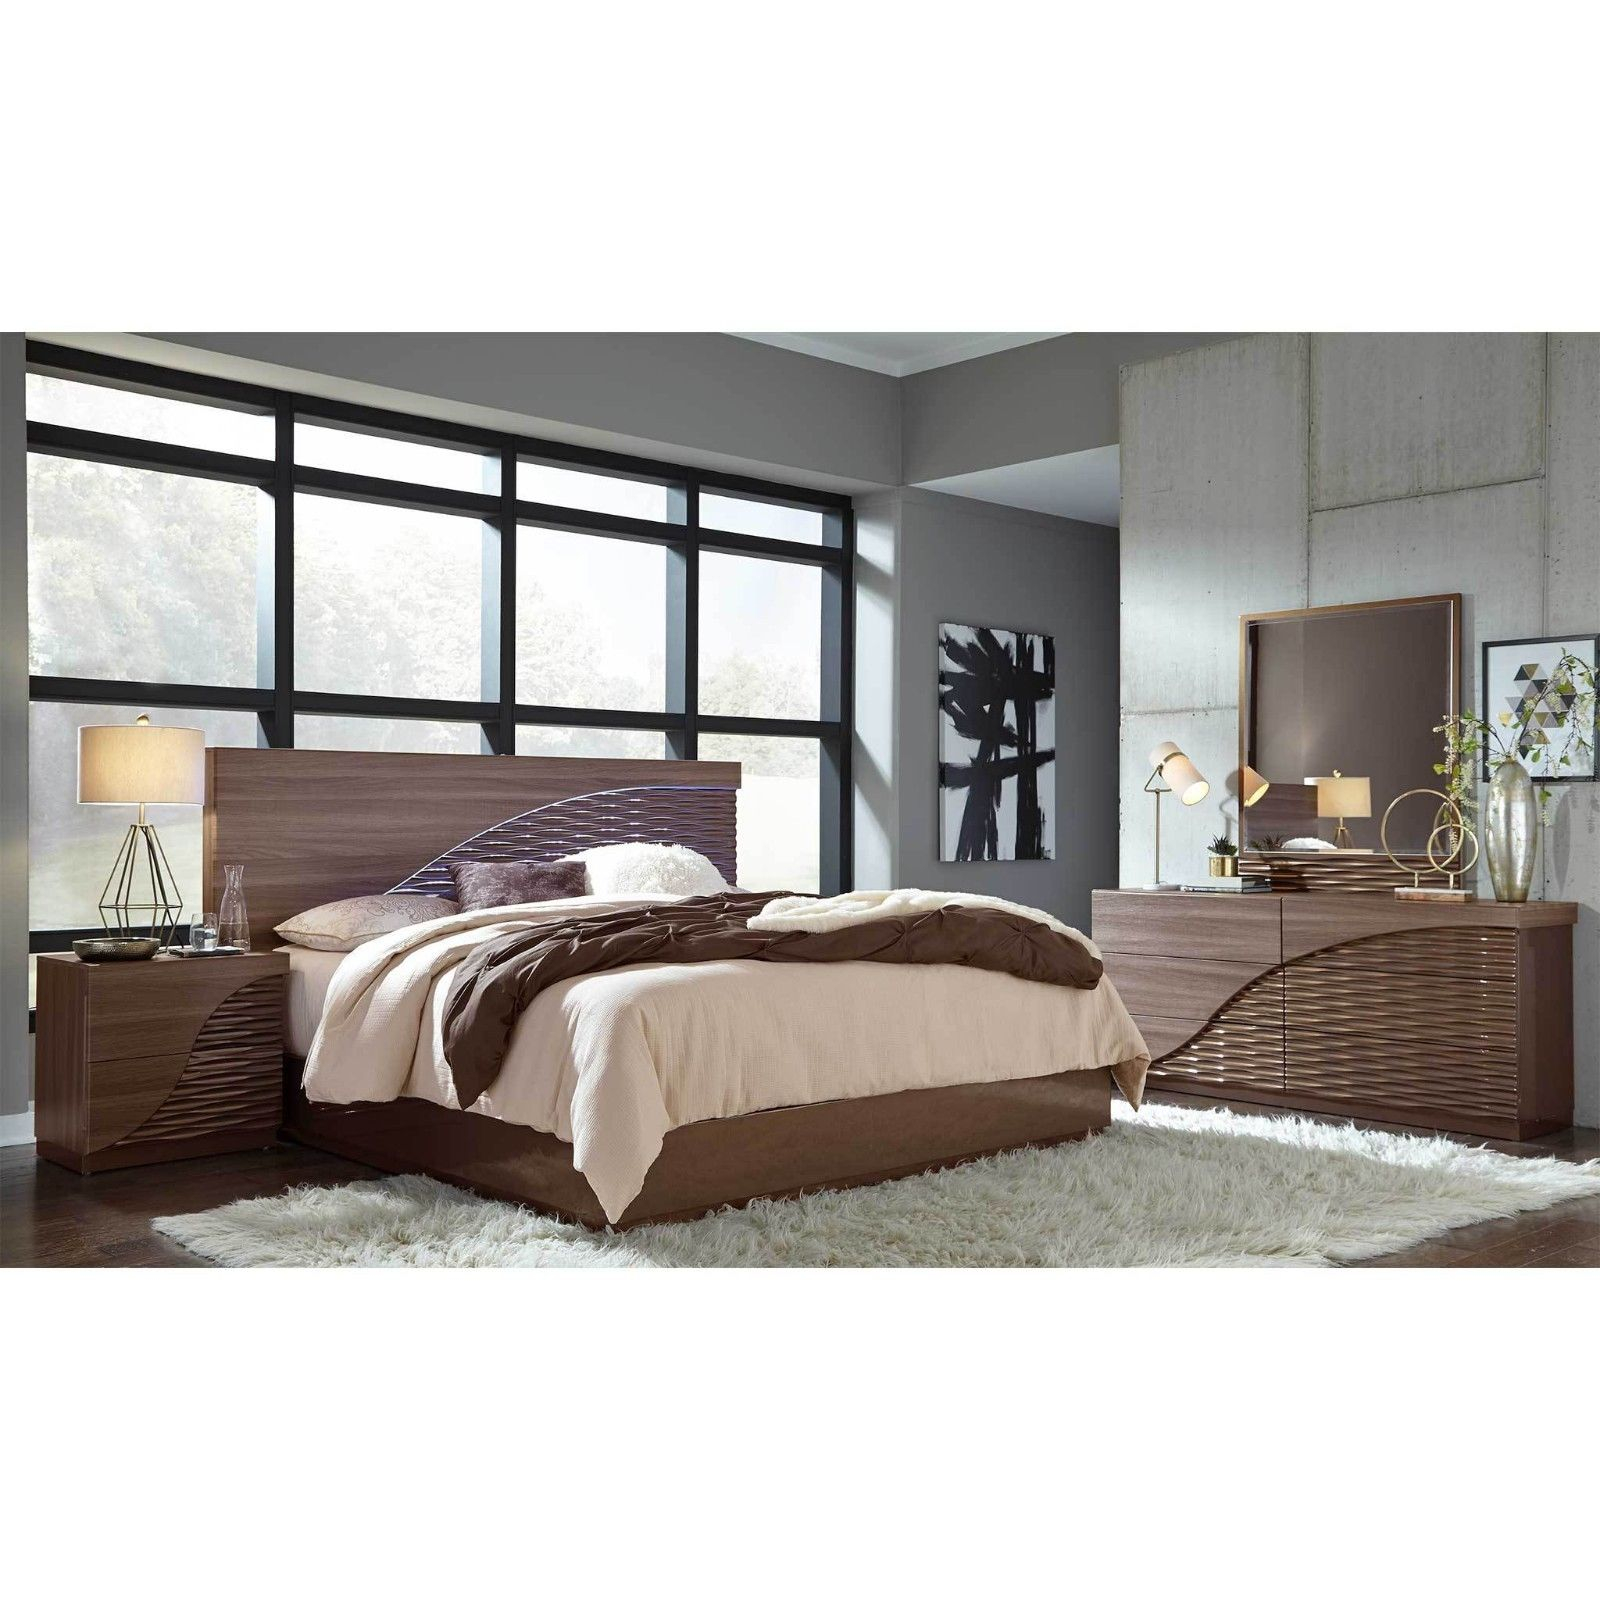 Master Modern Bedroom Set With Platform Bed With Led Accent Lighting pertaining to 13 Clever Ways How to Craft Modern Bedroom Sets Queen